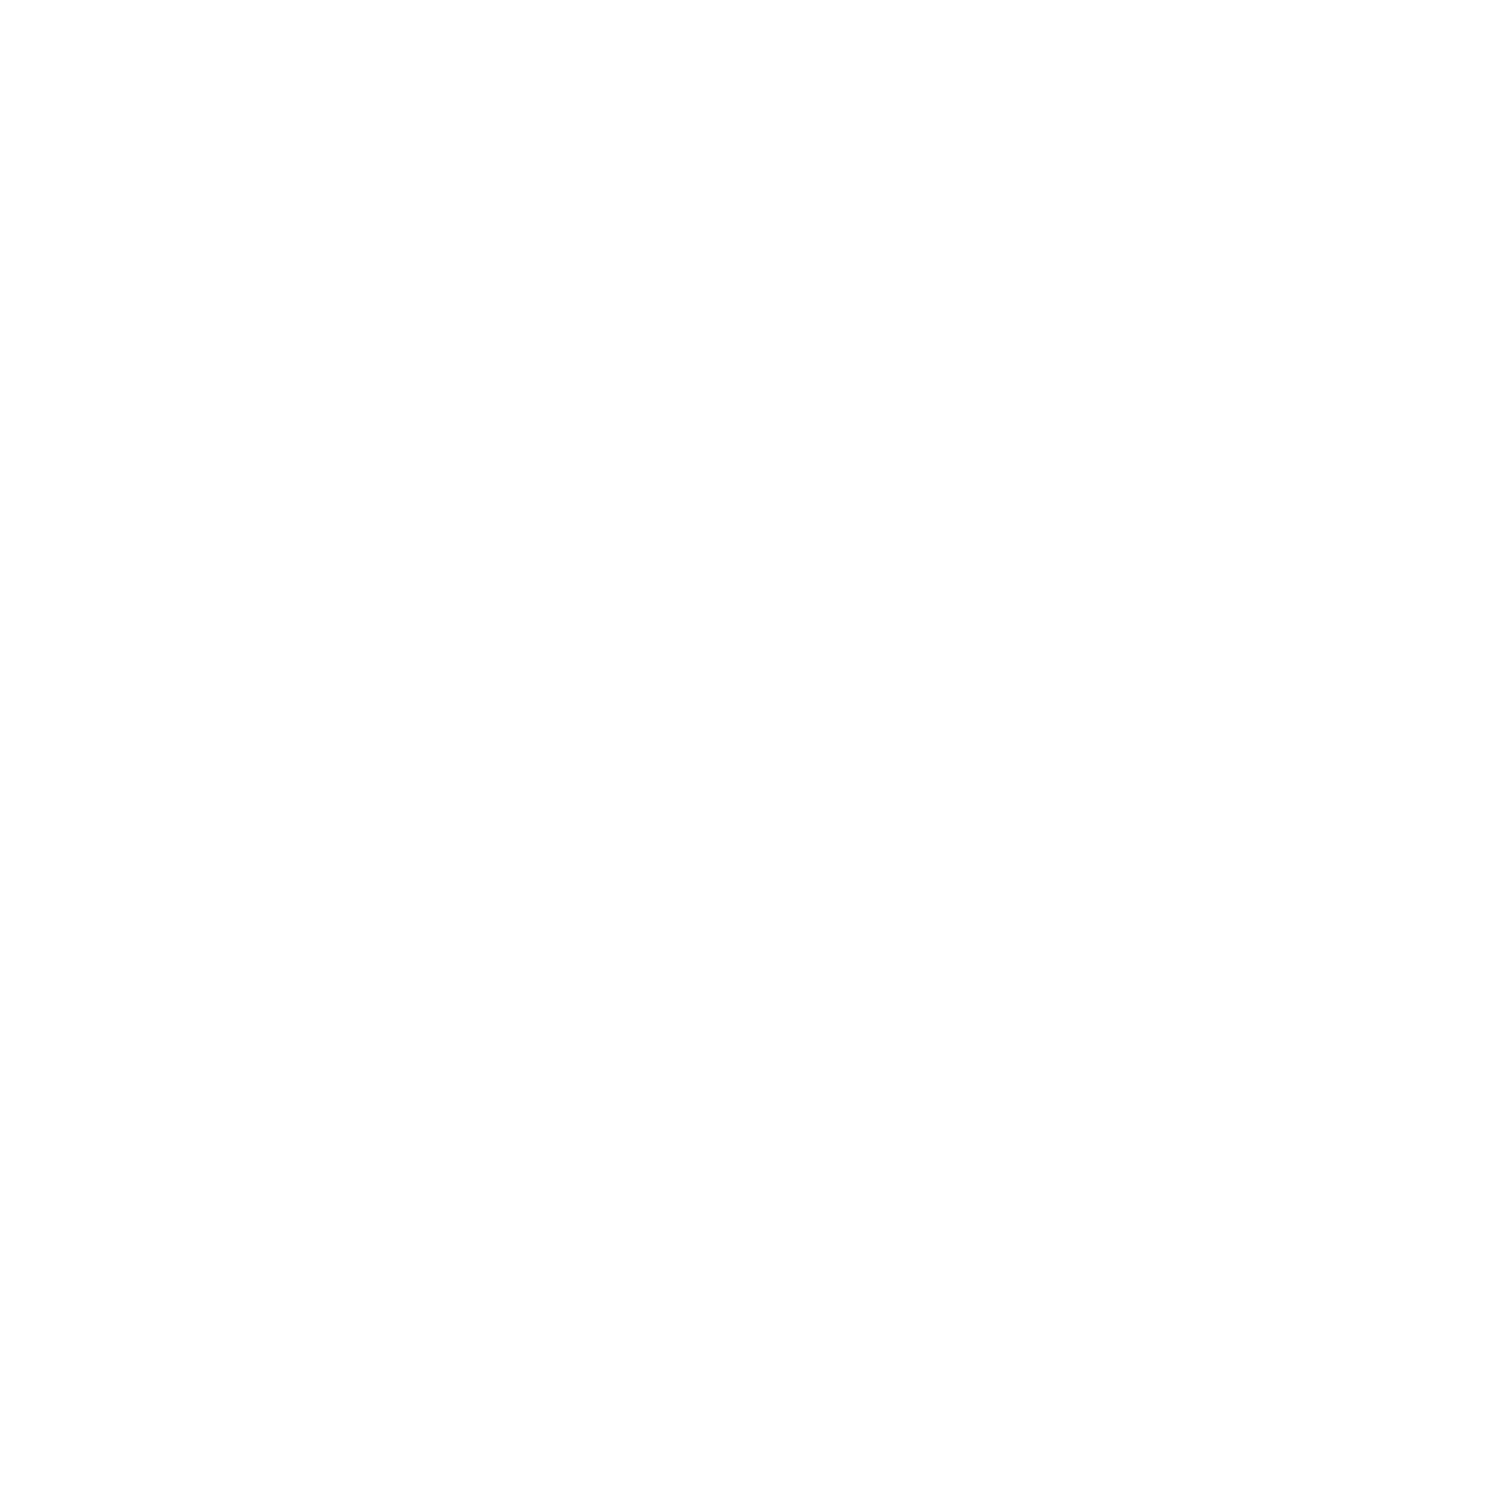 Revival Coalition